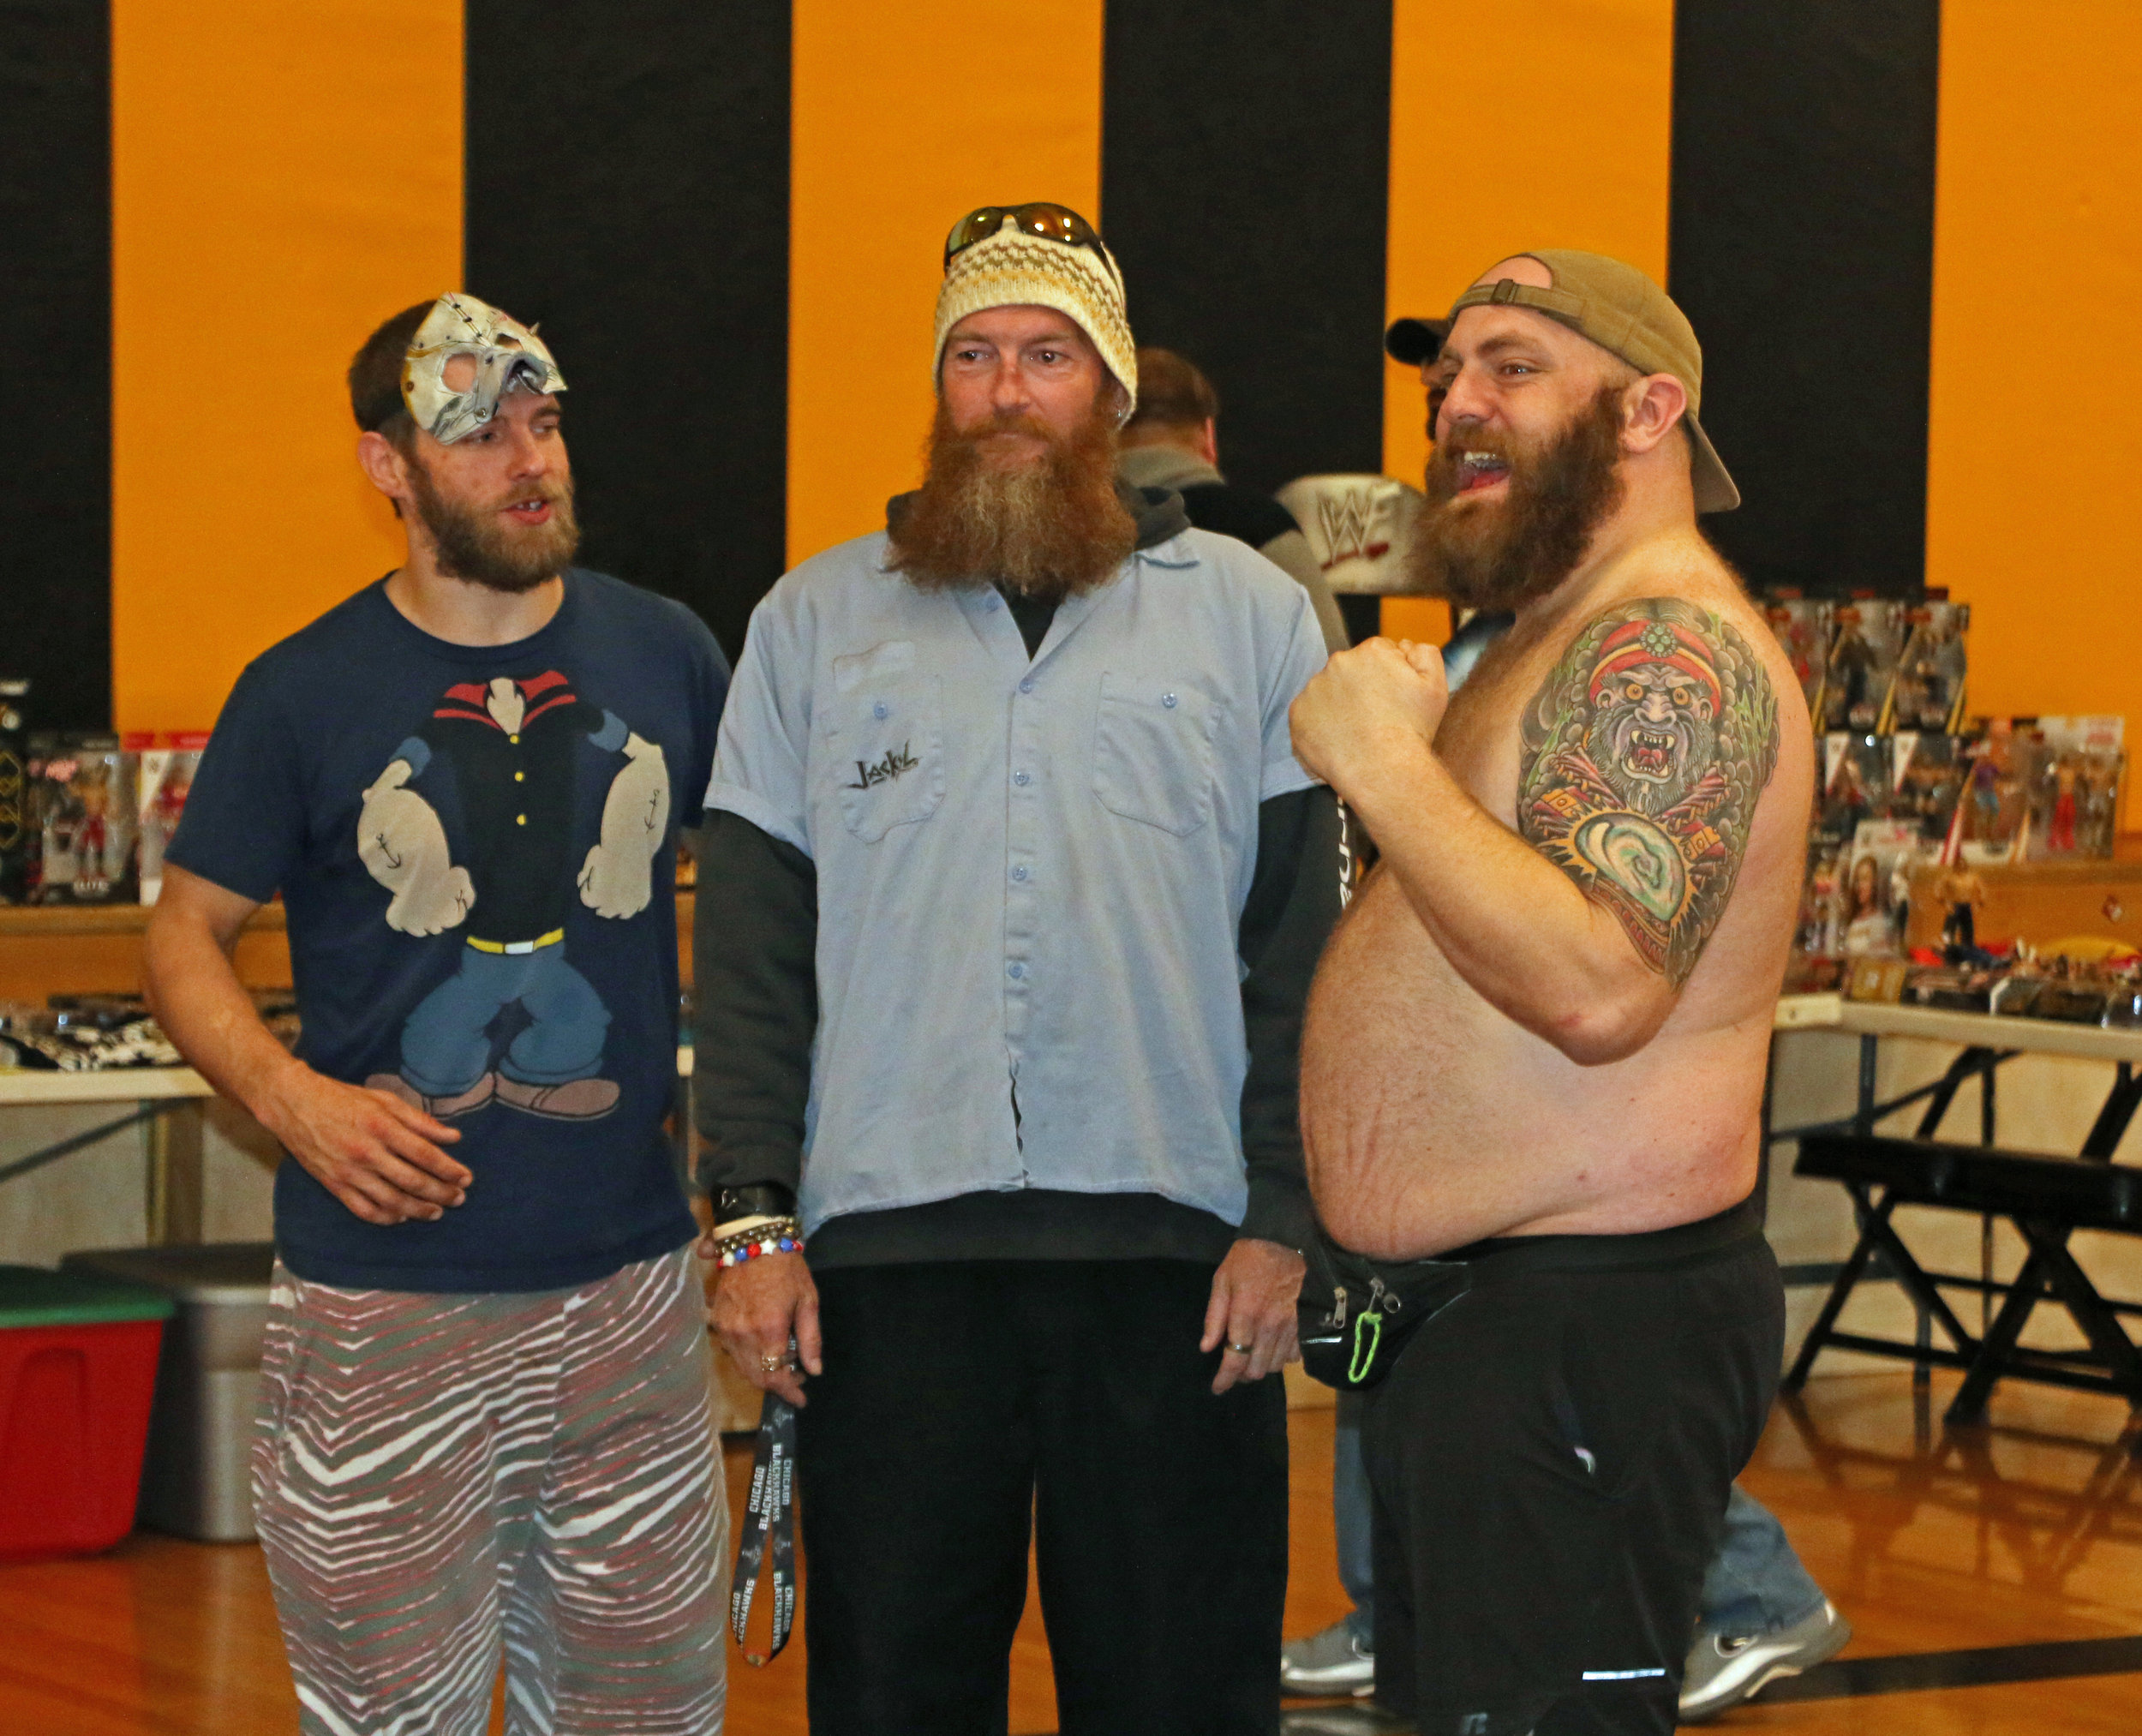 Rob Killjoy, left, and Coach Mikey, right, of the Ugly Duckings pose with a fan during the Warrior Wrestling 5 VIP Fan Fest.